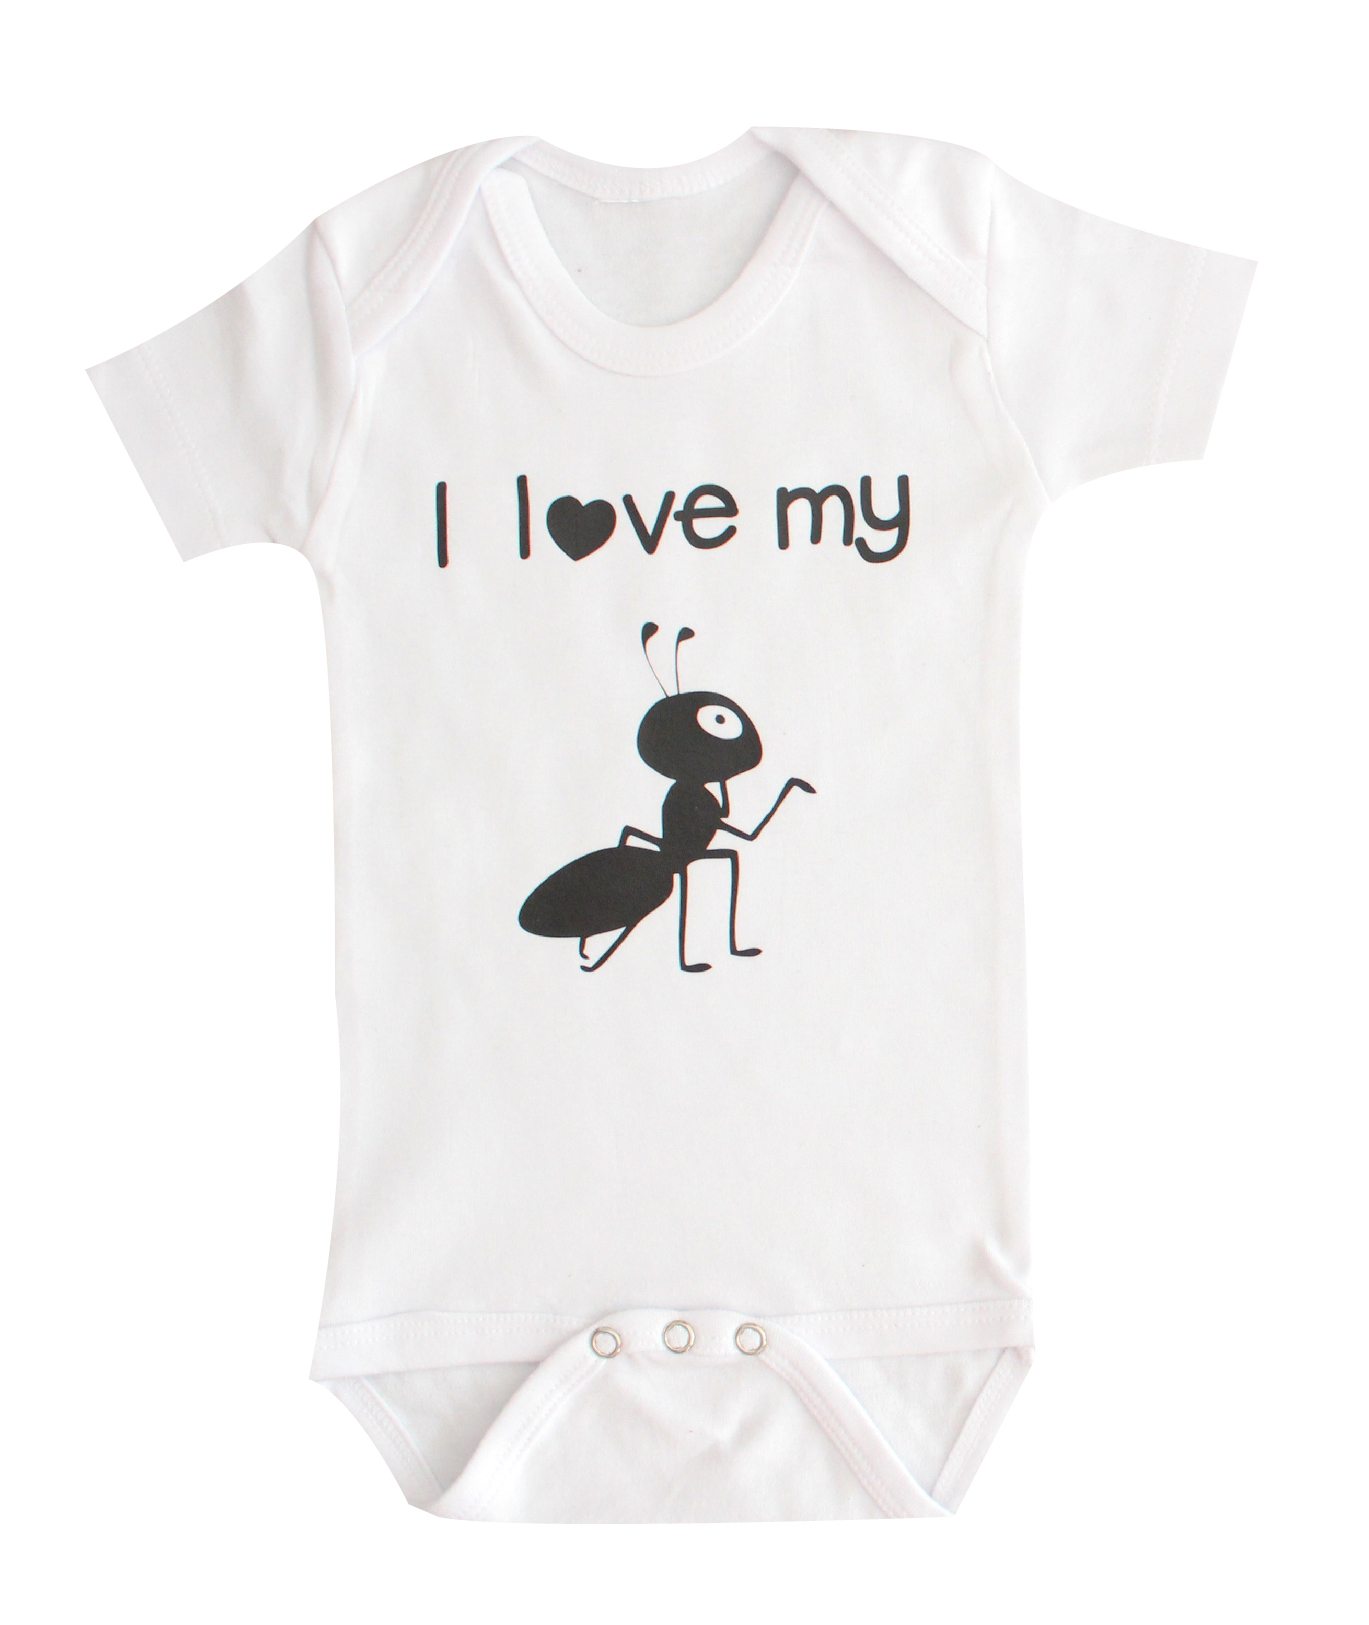 Wrap your little one in custom I Love My Aunt baby clothes. Cozy comfort at Zazzle! Personalized baby clothes for your bundle of joy. Choose from huge ranges of designs today!